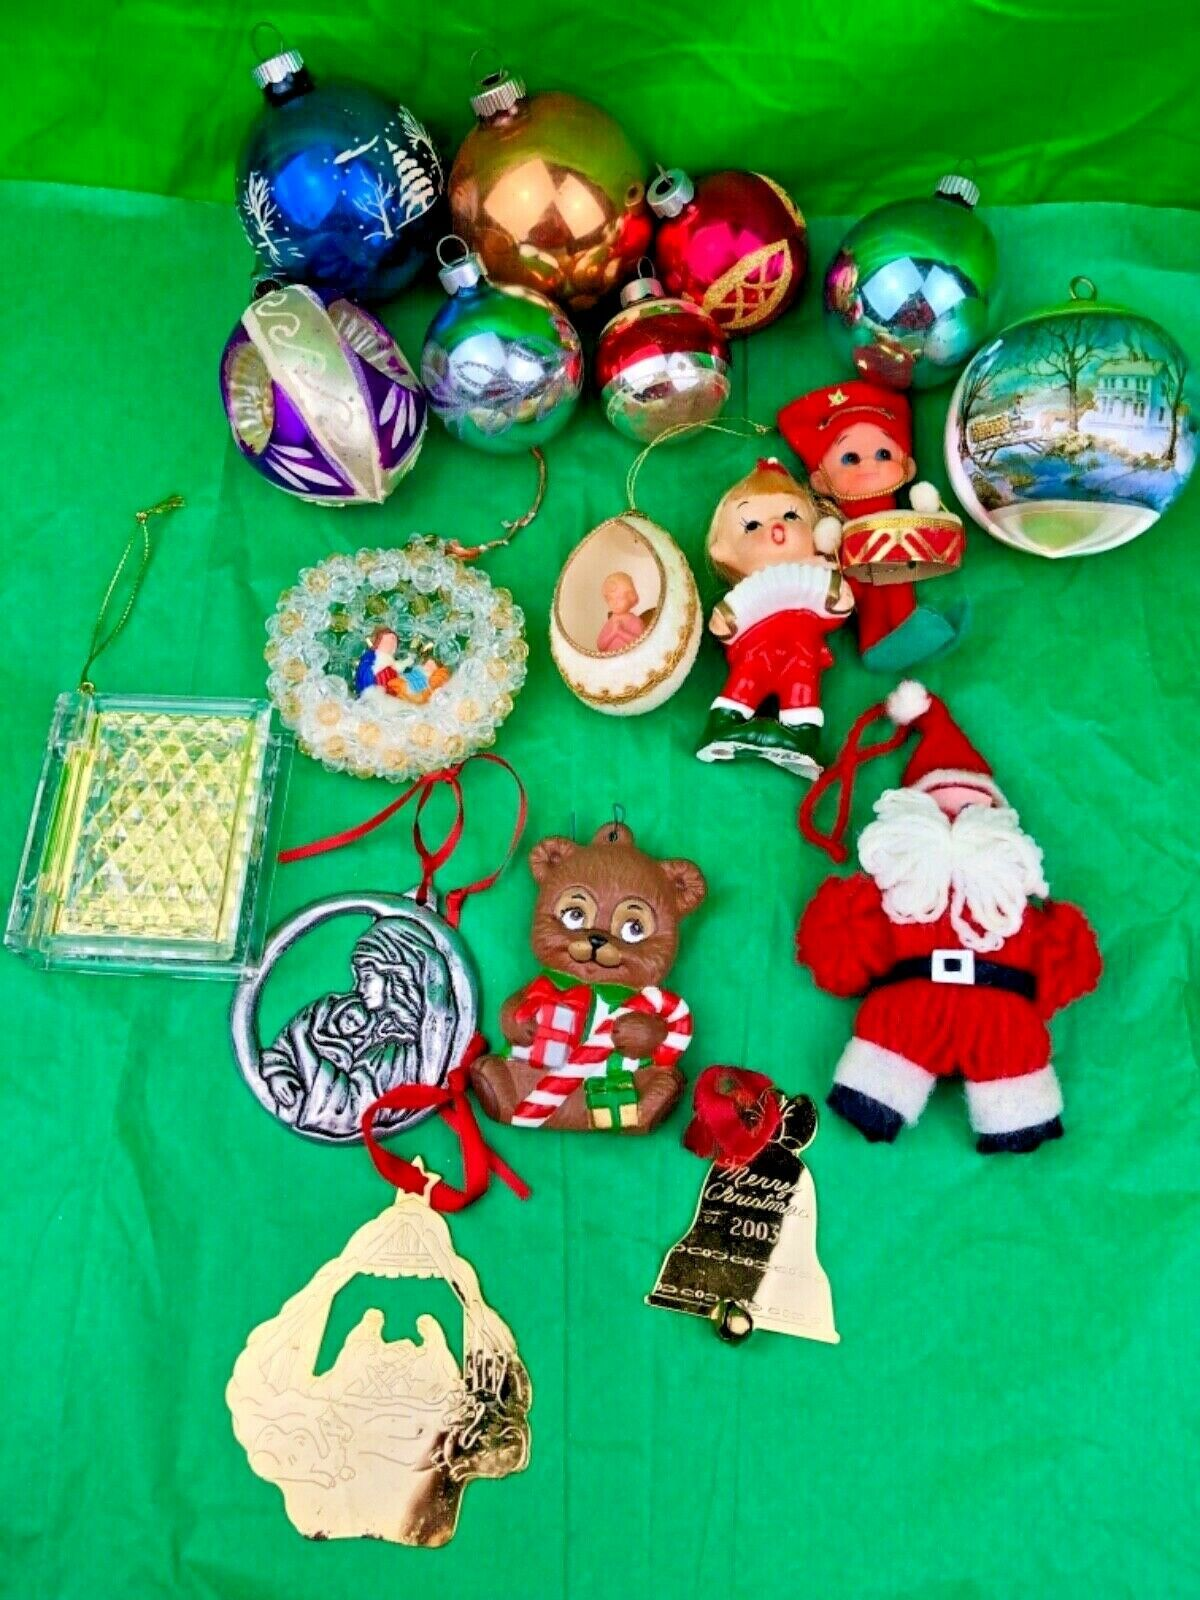 Christmas Ornaments Mixed Lot Of 18 Collectibles Ebay Christmas Decorations Ornaments Christmas Ornaments Dog Christmas Ornaments